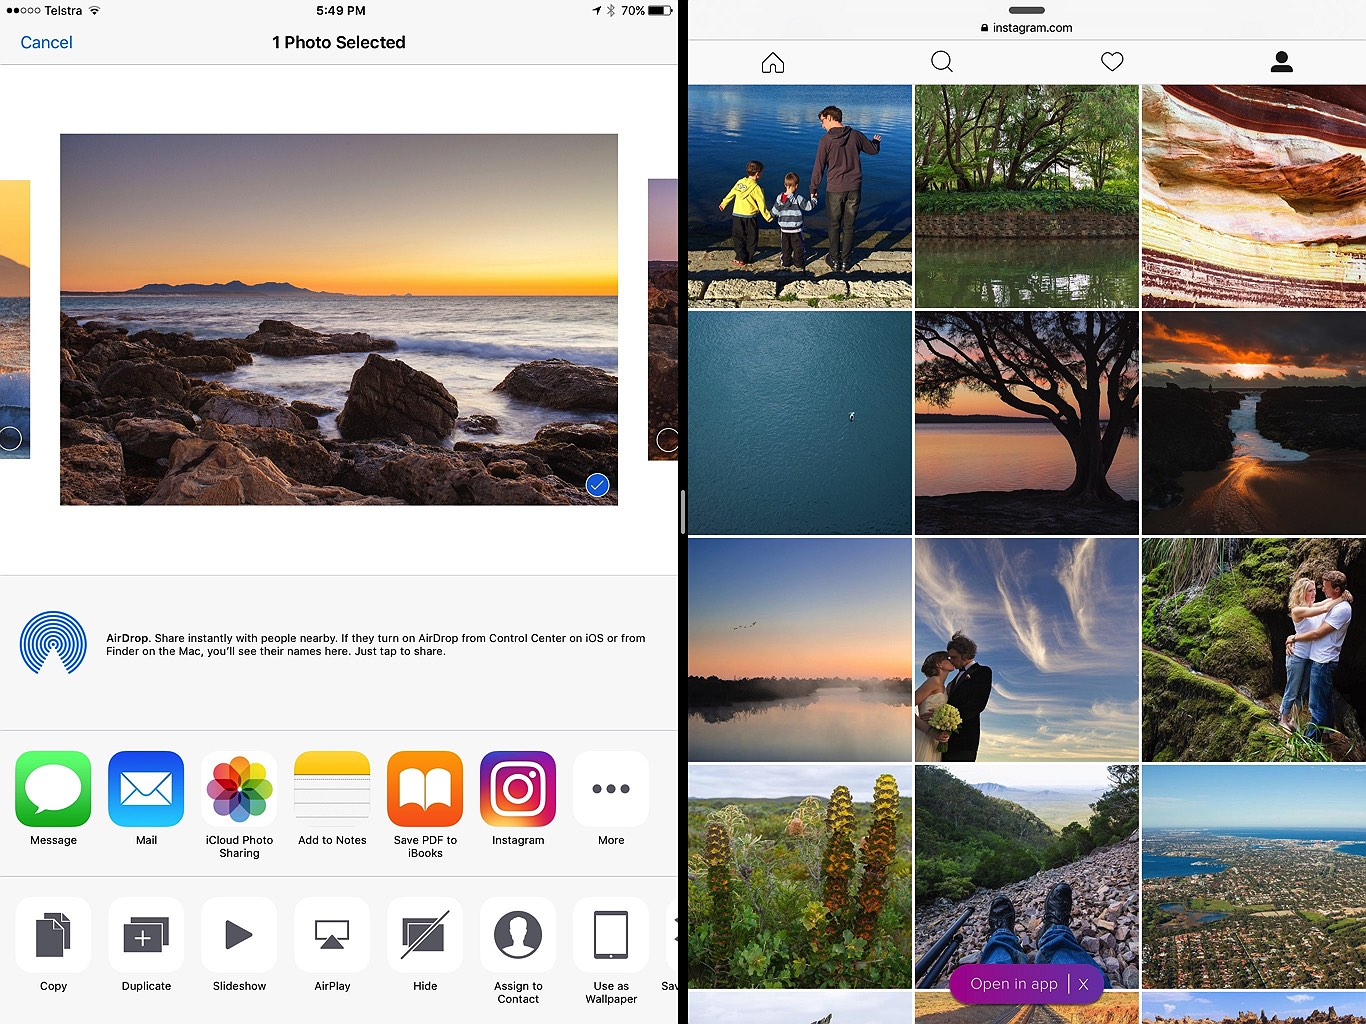 how to open instagram photo in safari